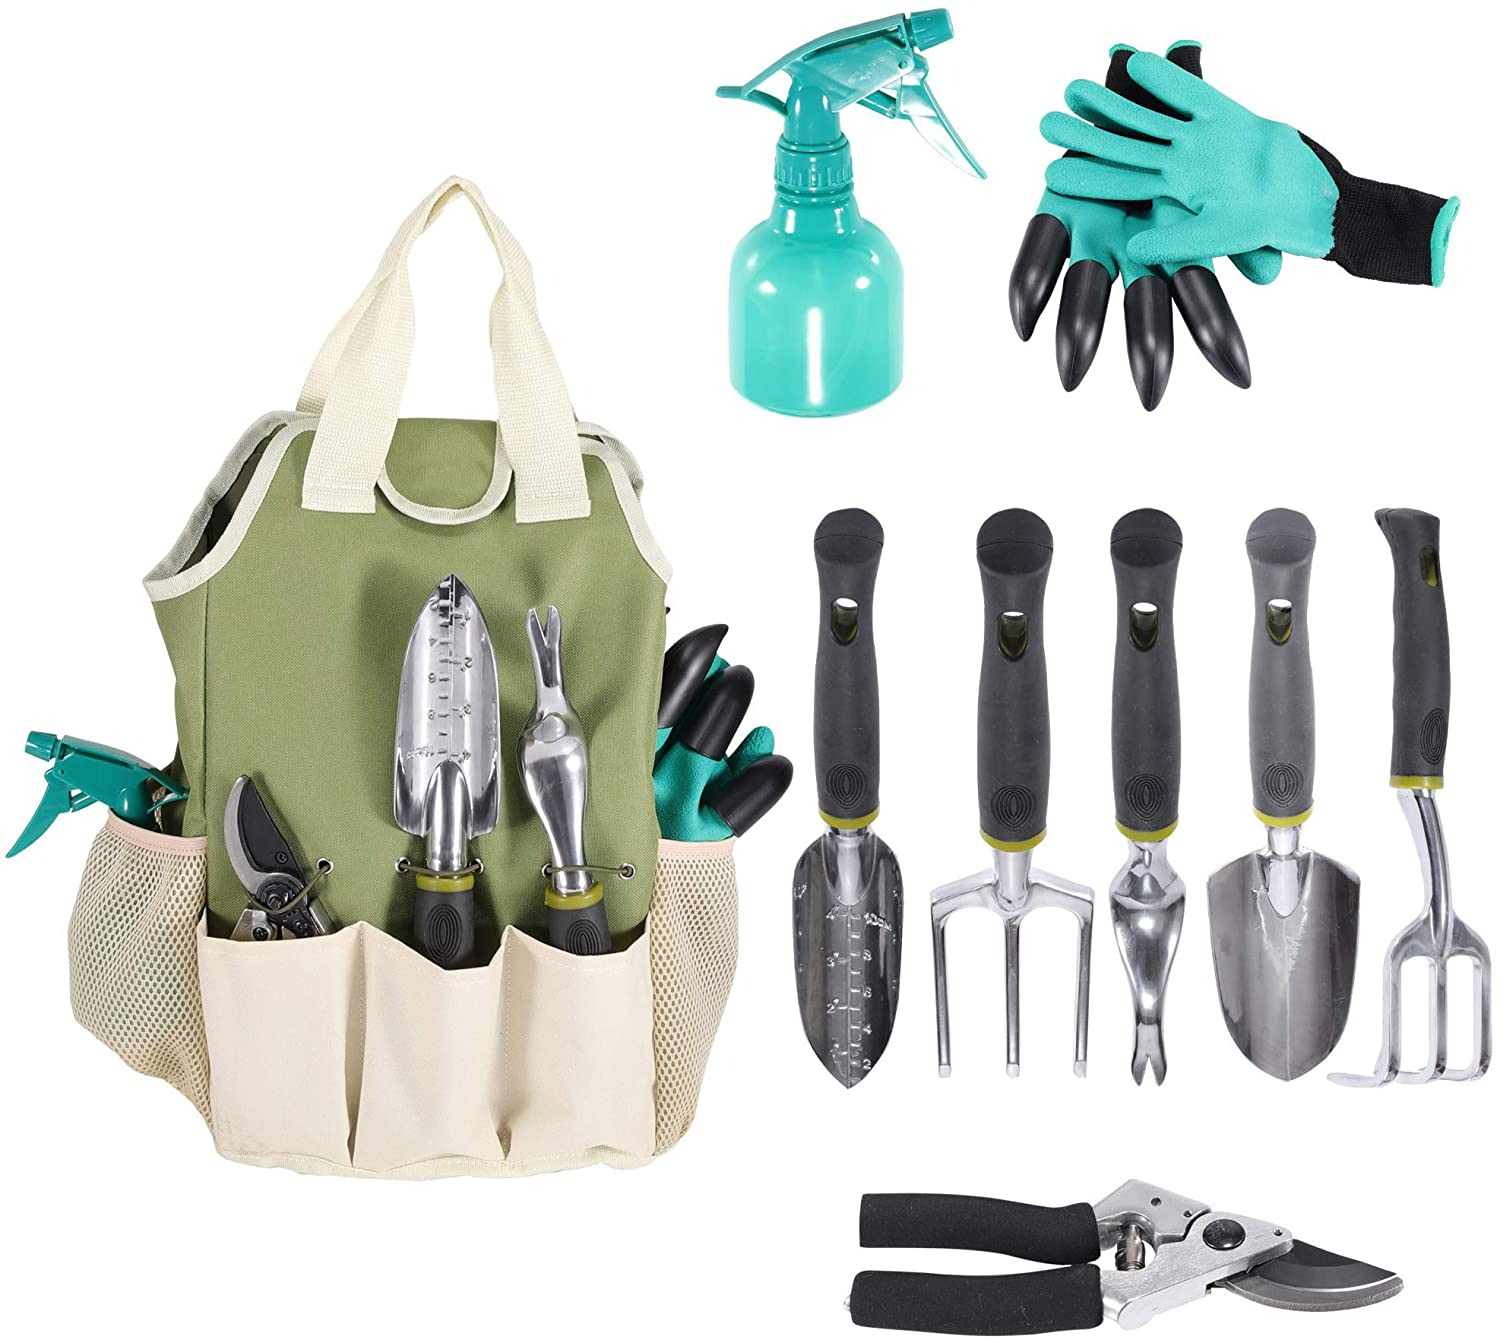 Garden Tools Set | Garden Tool Organizer Tote | Gardening Gloves Included Great Garden Tools for Woman and Men | 9 Piece Garden Accessories Tool Organizer Kit | Gardening Gifts | Gardeners Supply